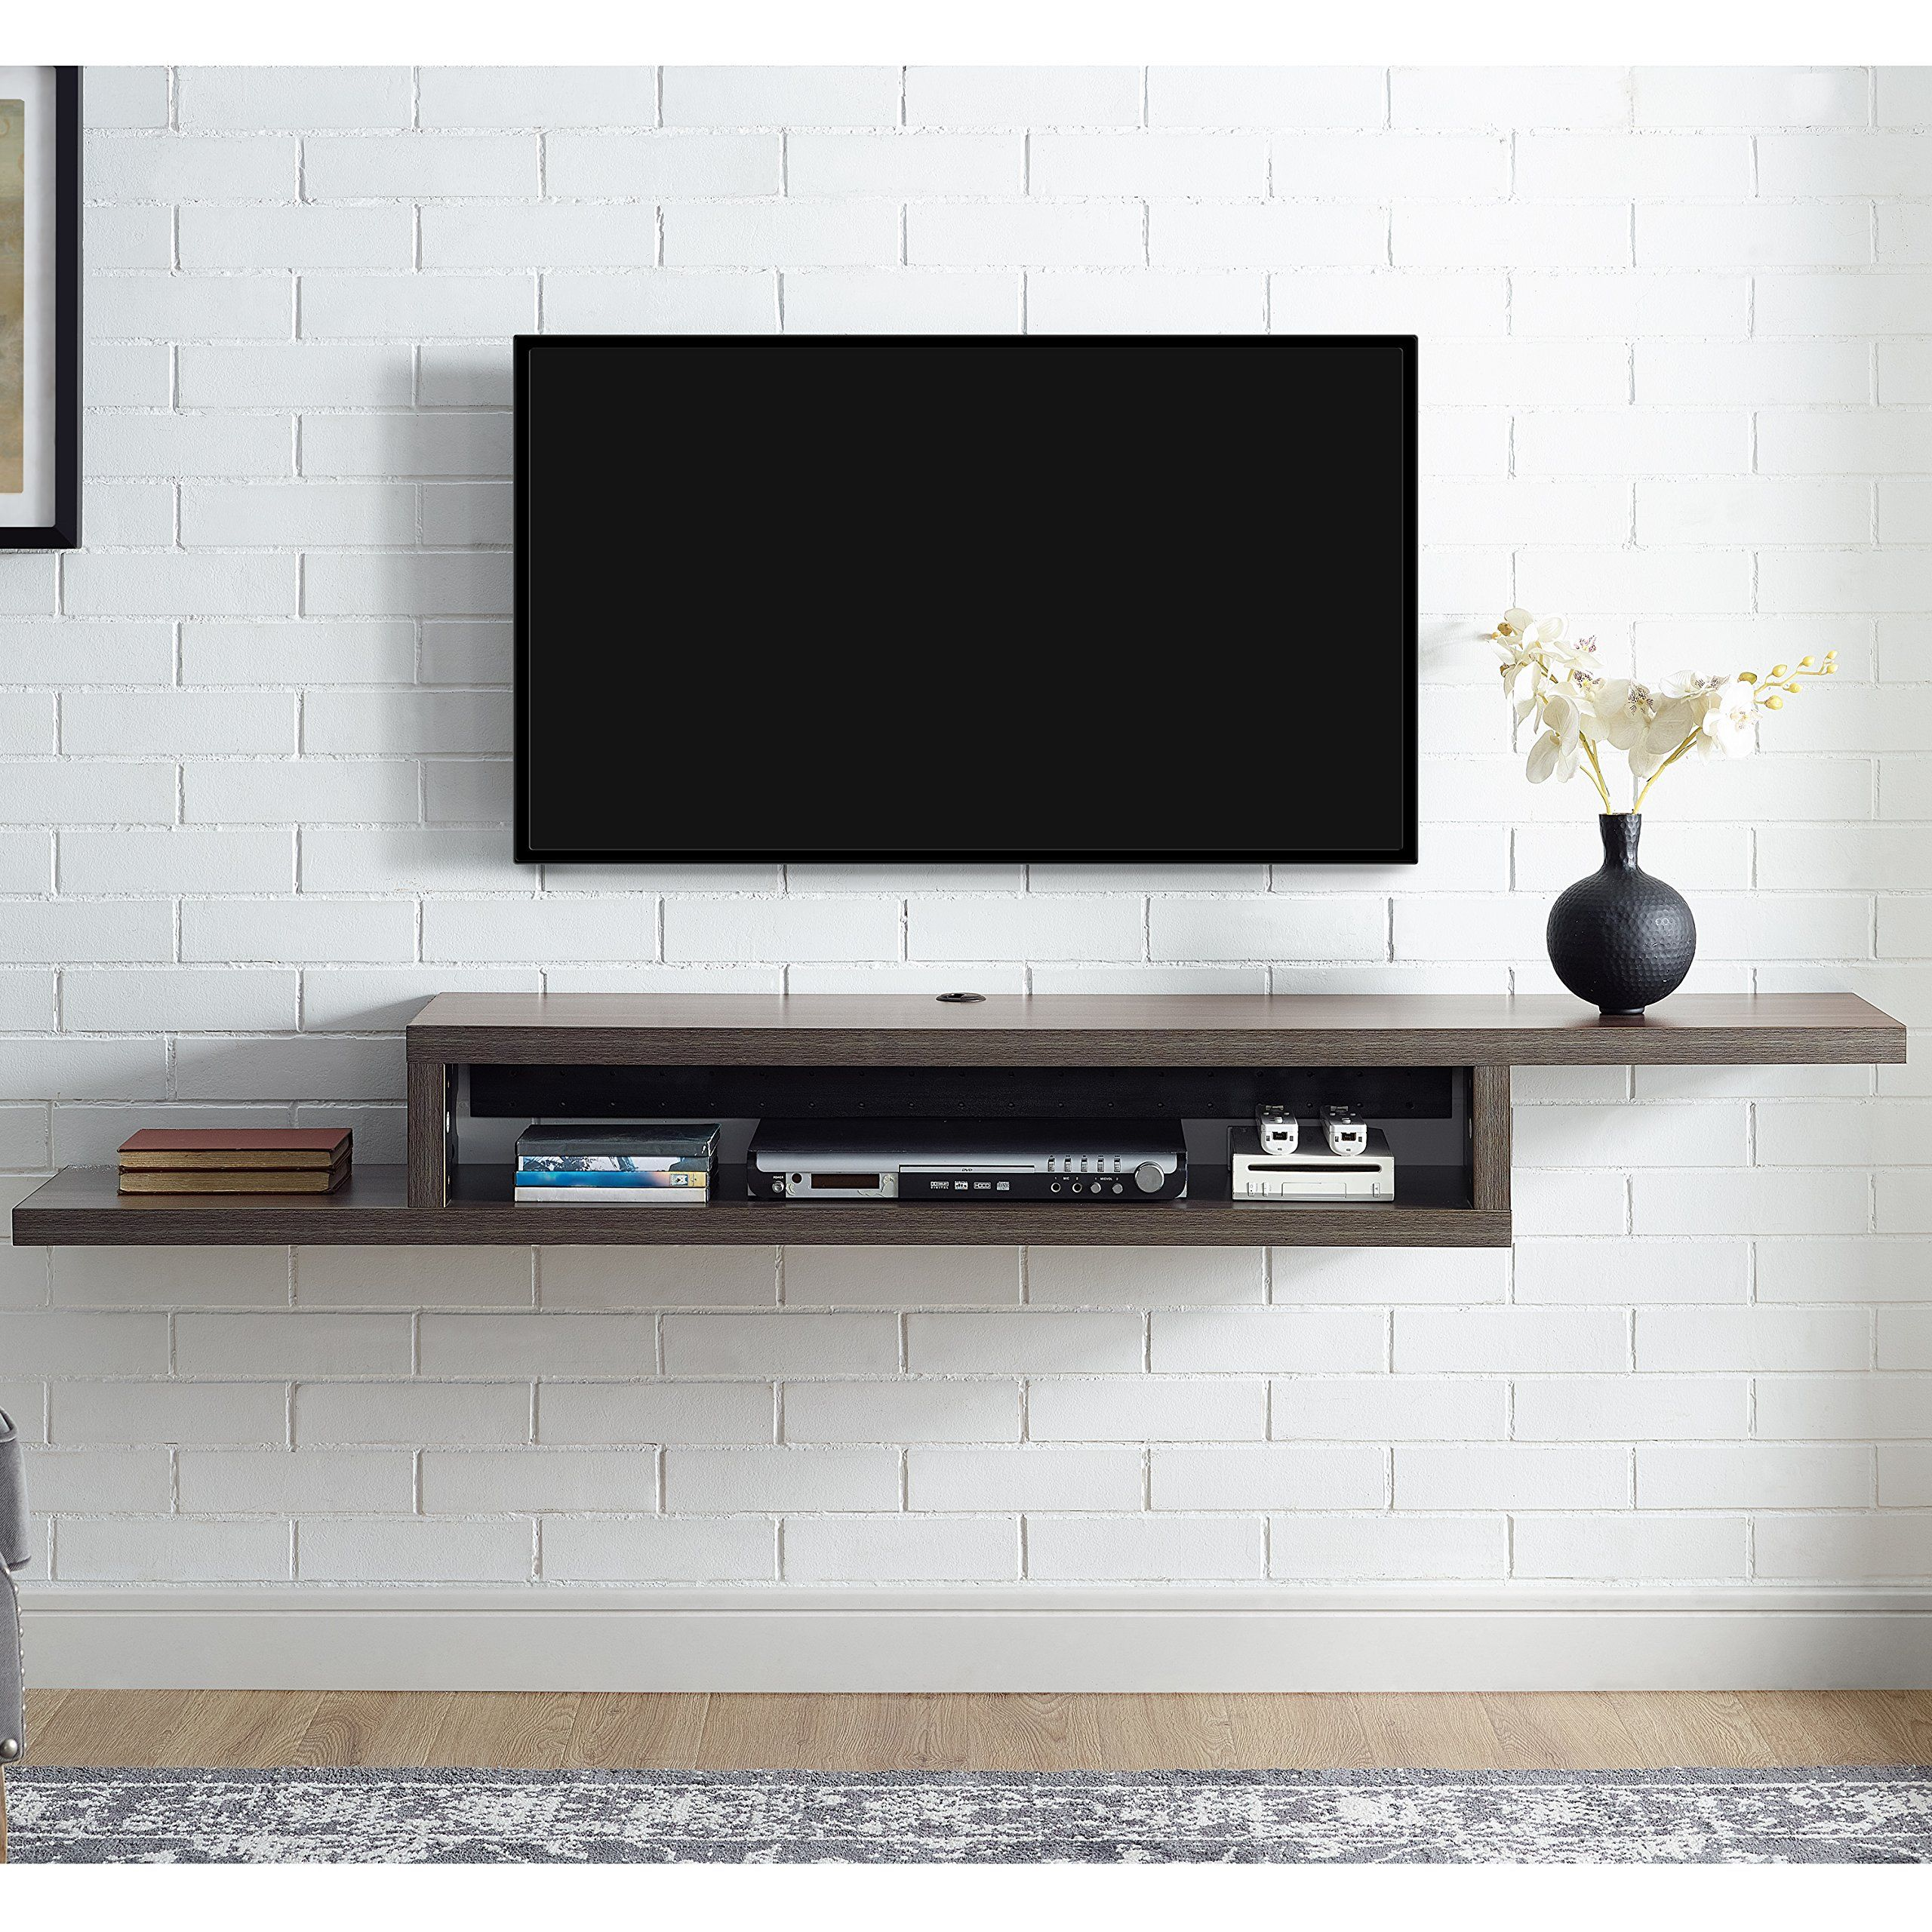 Martin Furniture Imas370s Asymmetrical Floating Wall Mounted Tv  # Meuble Tv Gamer